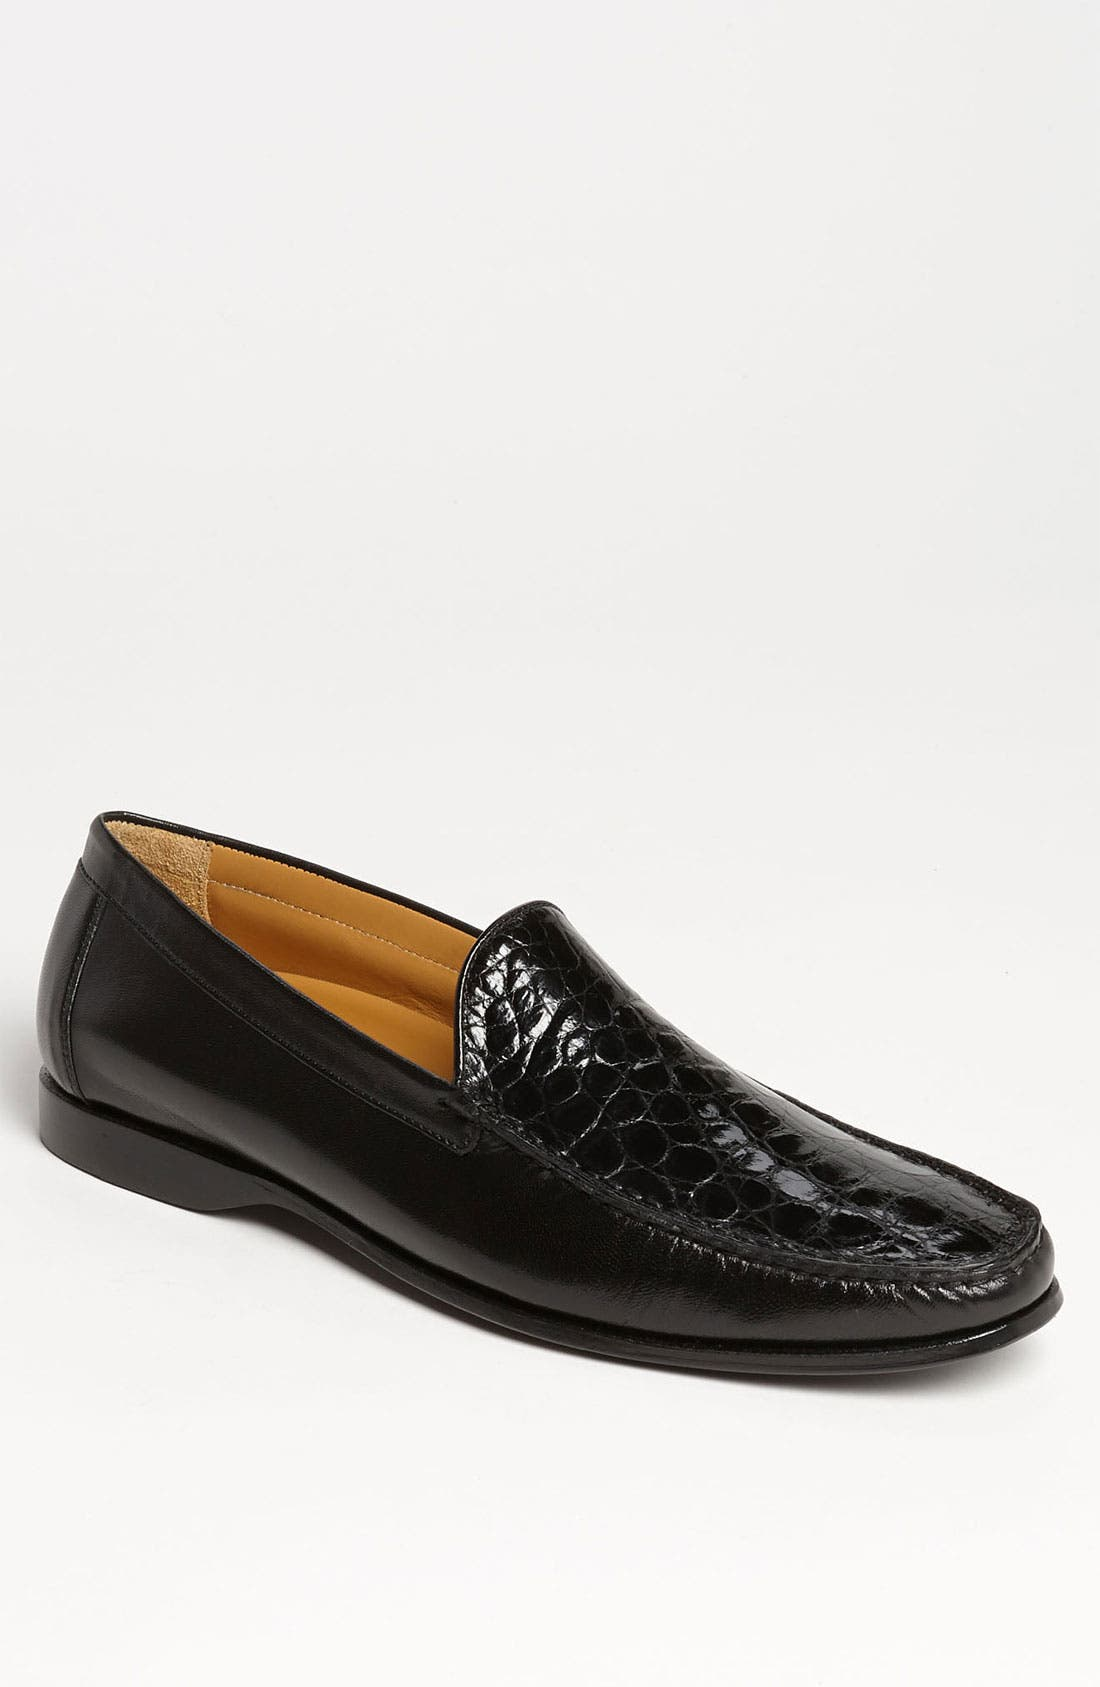 'Costanzo' Loafer,                         Main,                         color, 001